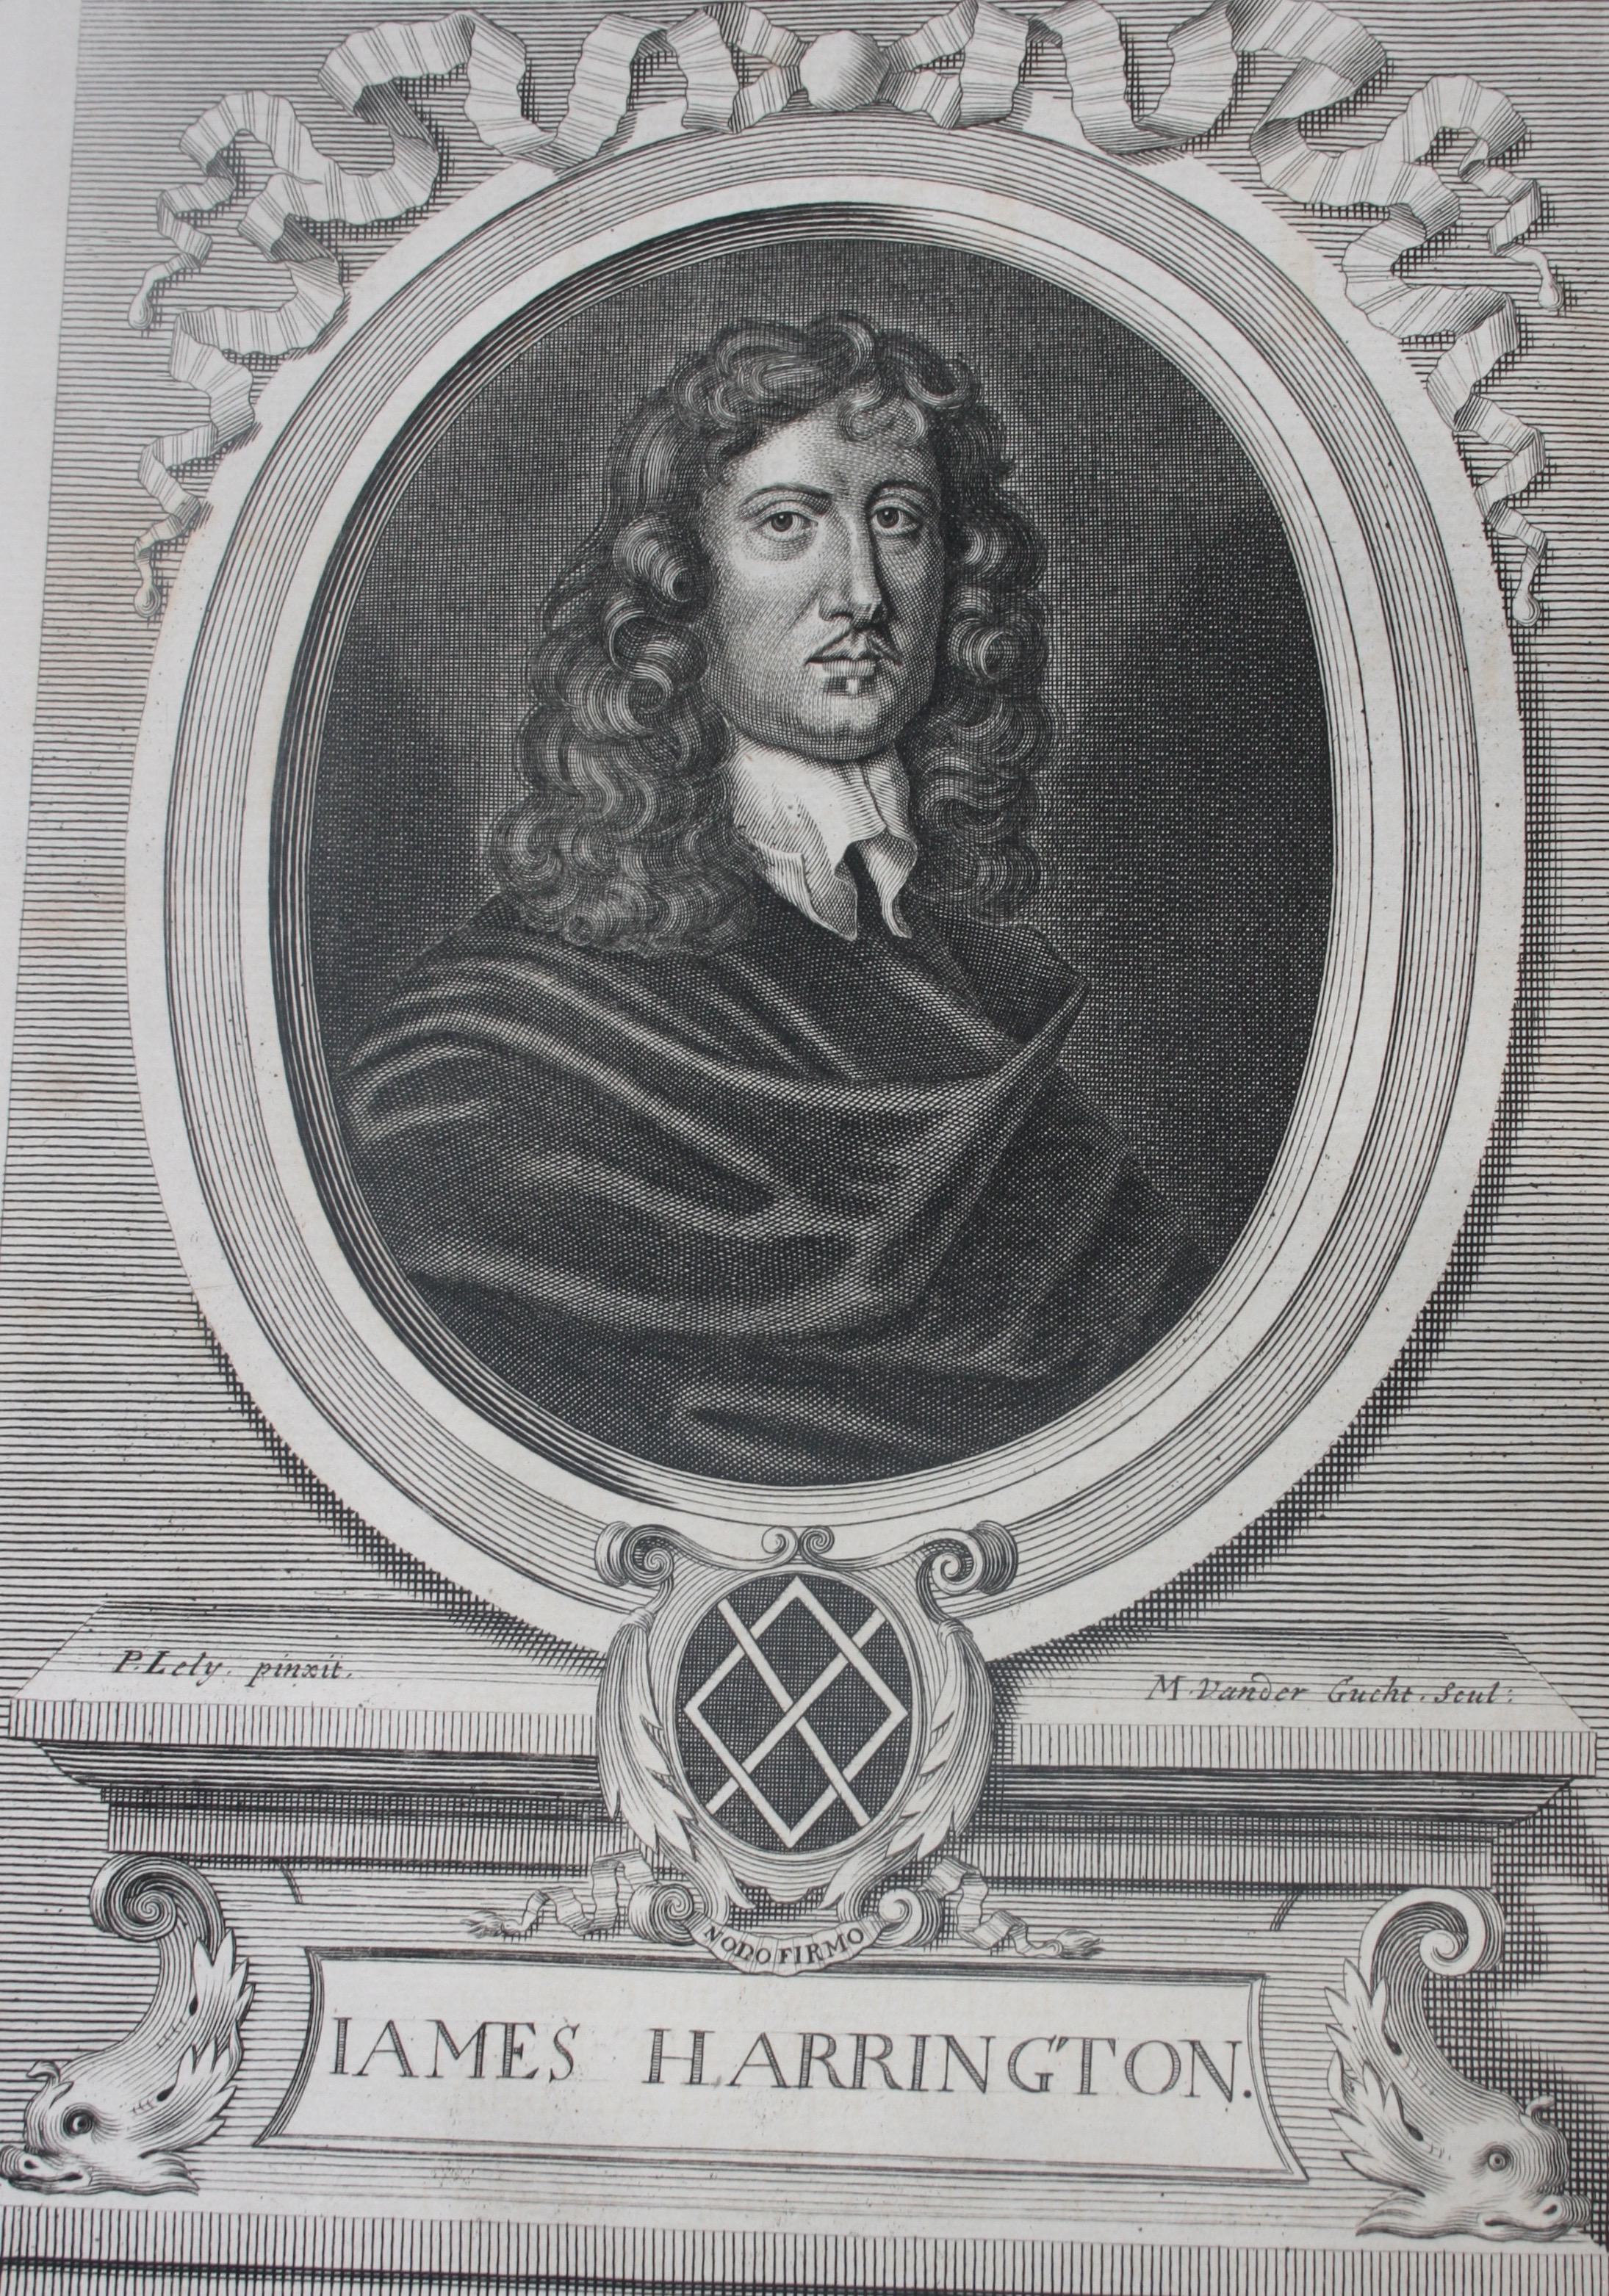 Peter Lely's portrait of James Harrington from John Toland's edition of Harrington's works. Image by Rachel Hammersley, with thanks to James Babb.